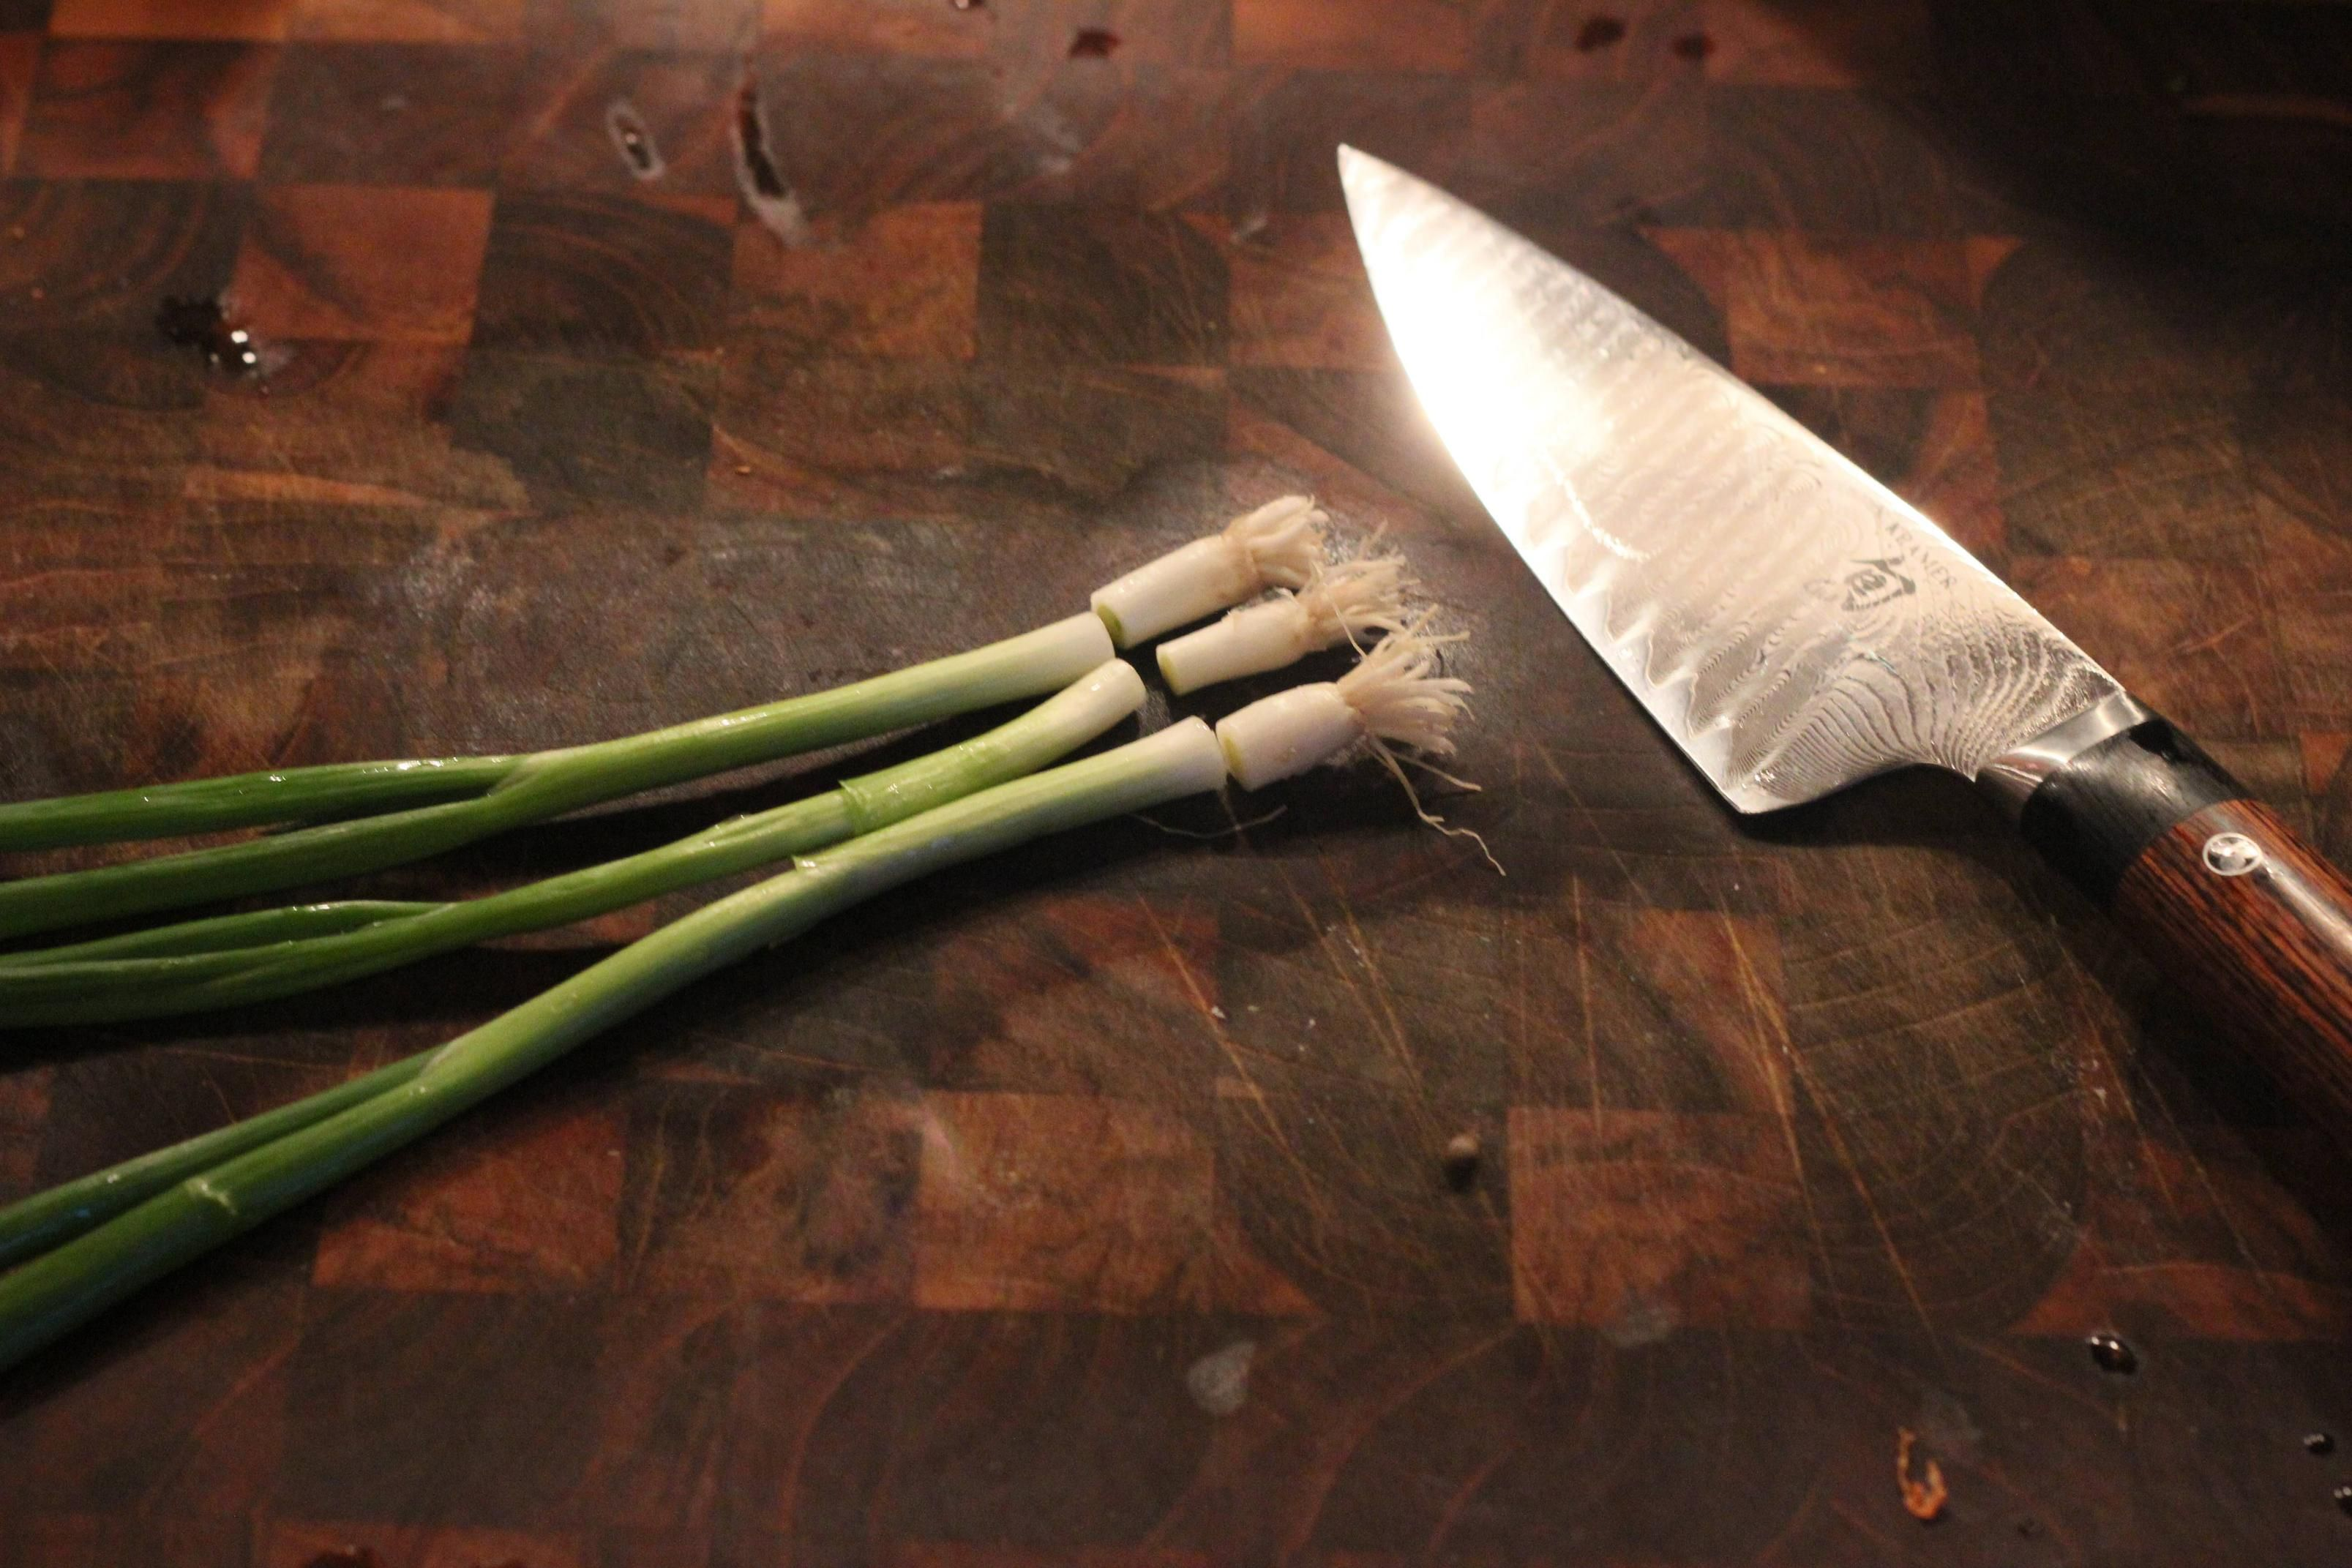 Don't throw away your scallion roots! You can regrow scallions in a few days.